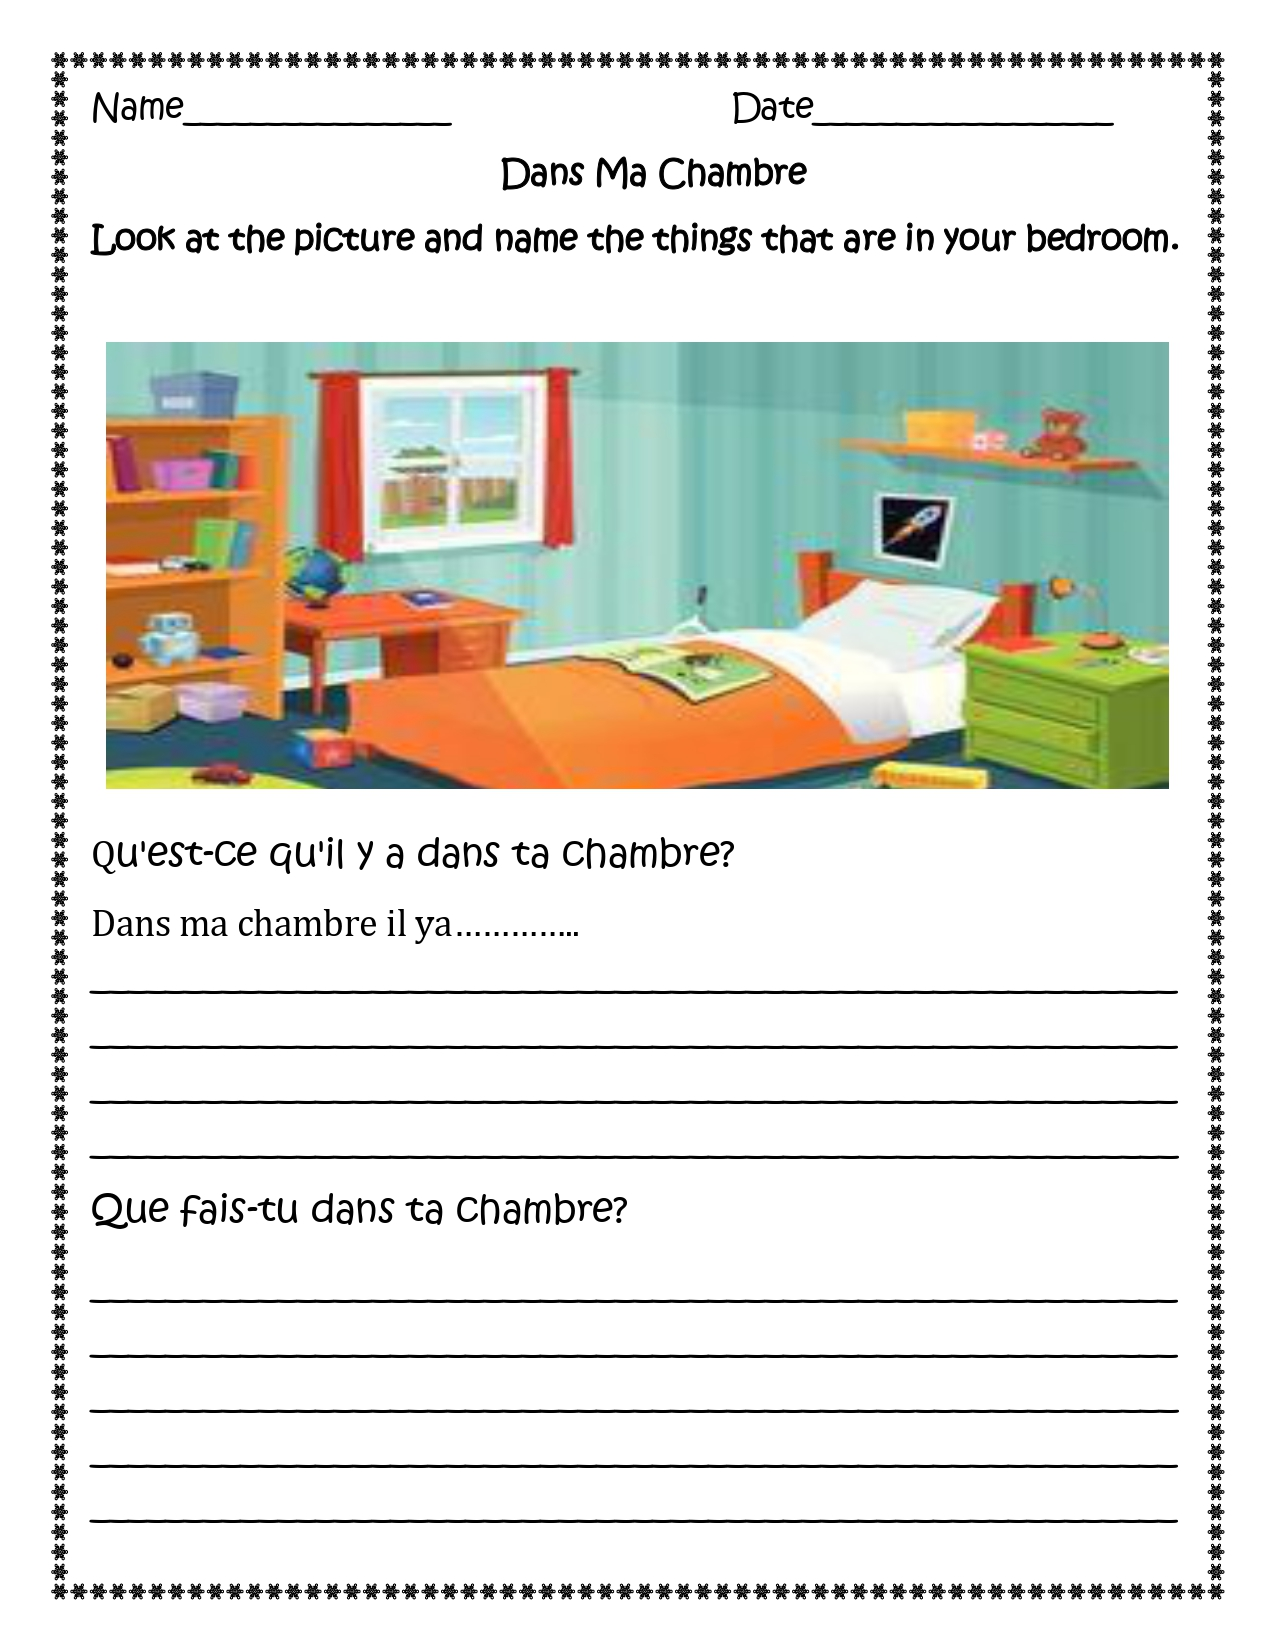 Dans La Chambre French Bedroom Distance Learning